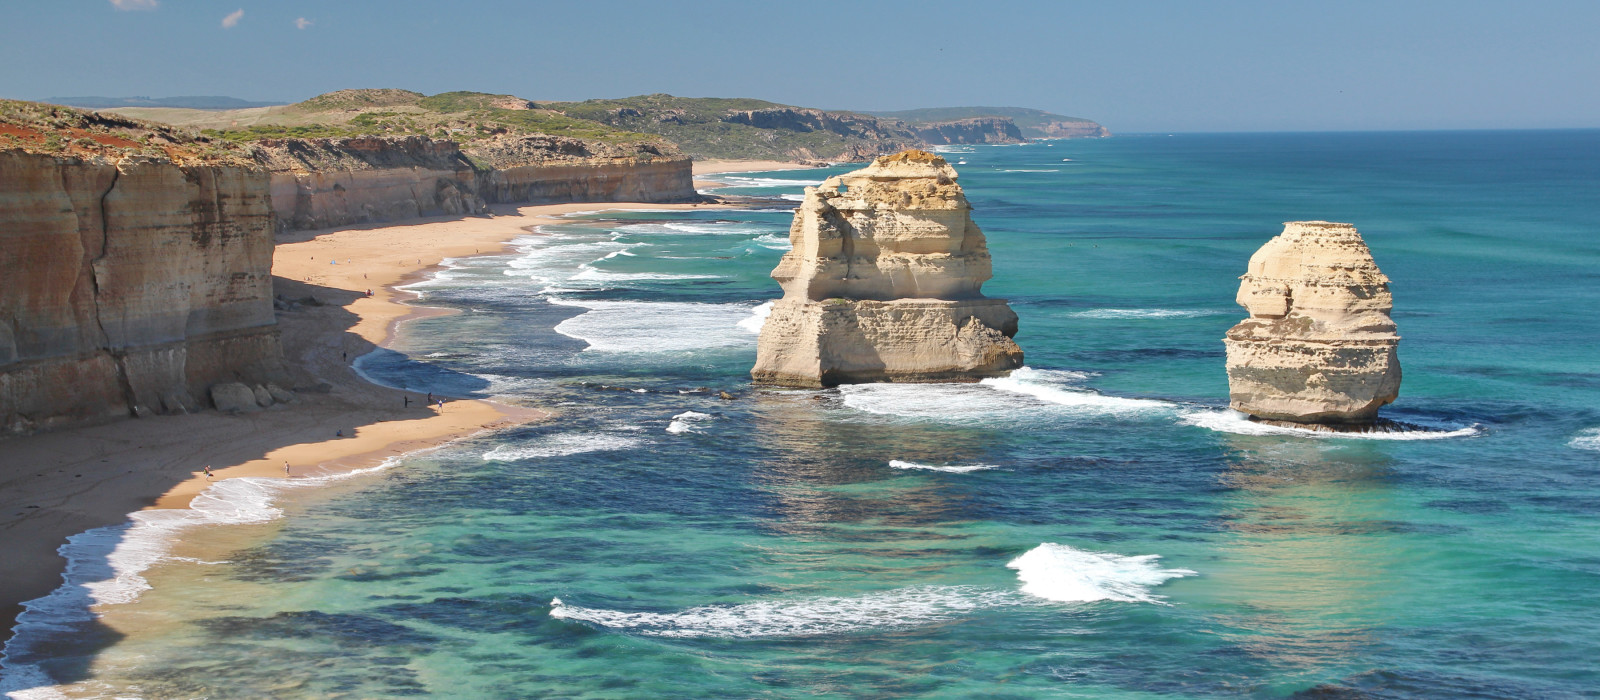 Twelve apostles marine national park at sunset, Great Ocean Road at Port Campbell, Victoria, Australia - oceania tours